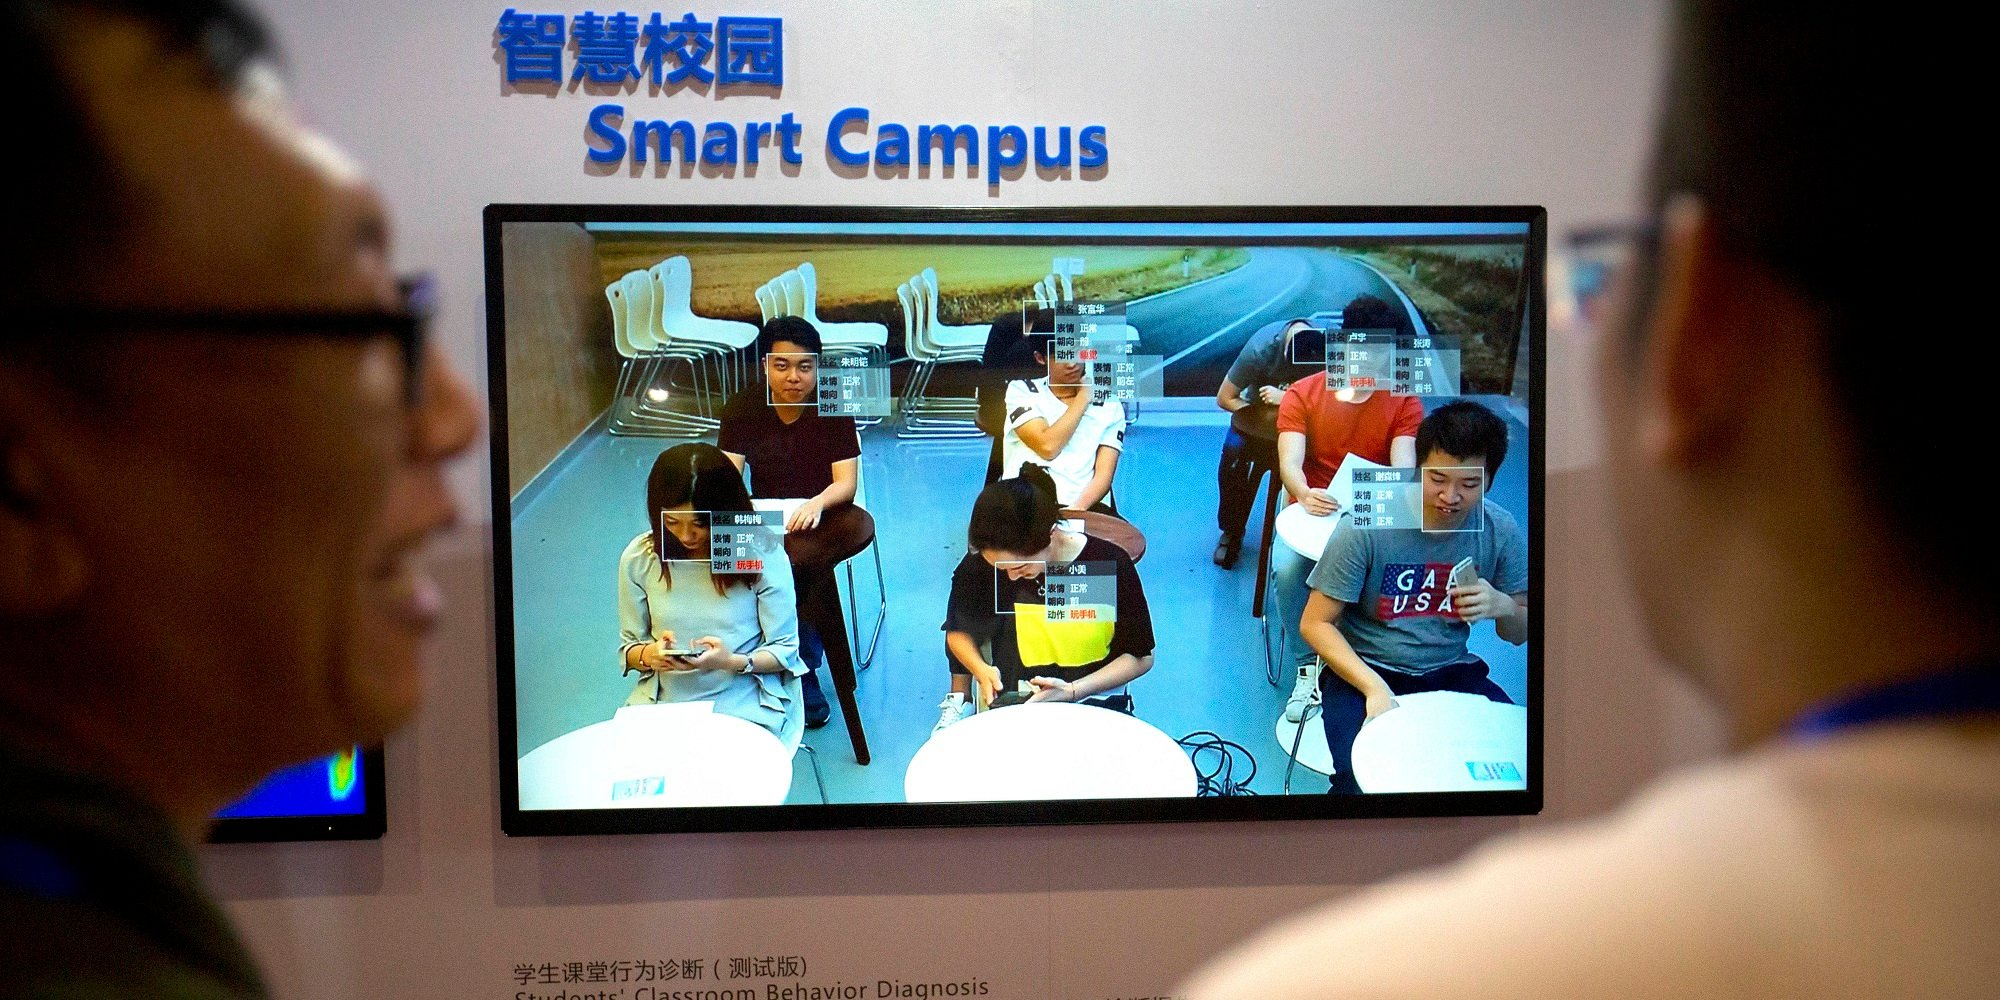 A Chinese School is Using Facial Recognition to Analyze Students